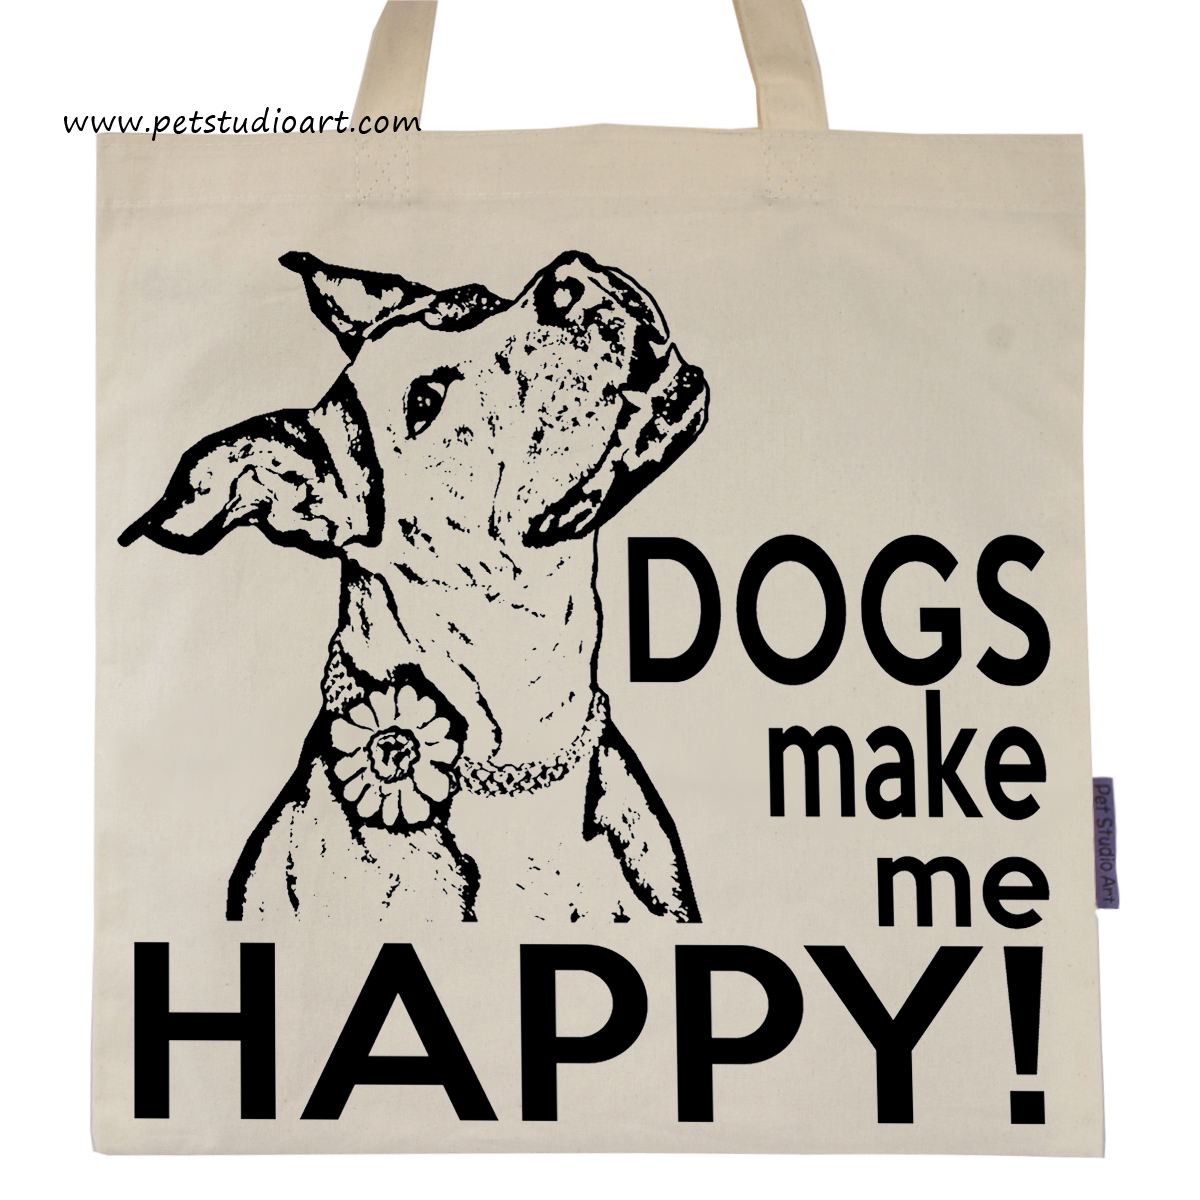 Dogs Make Me Happy Tote Bag  $15